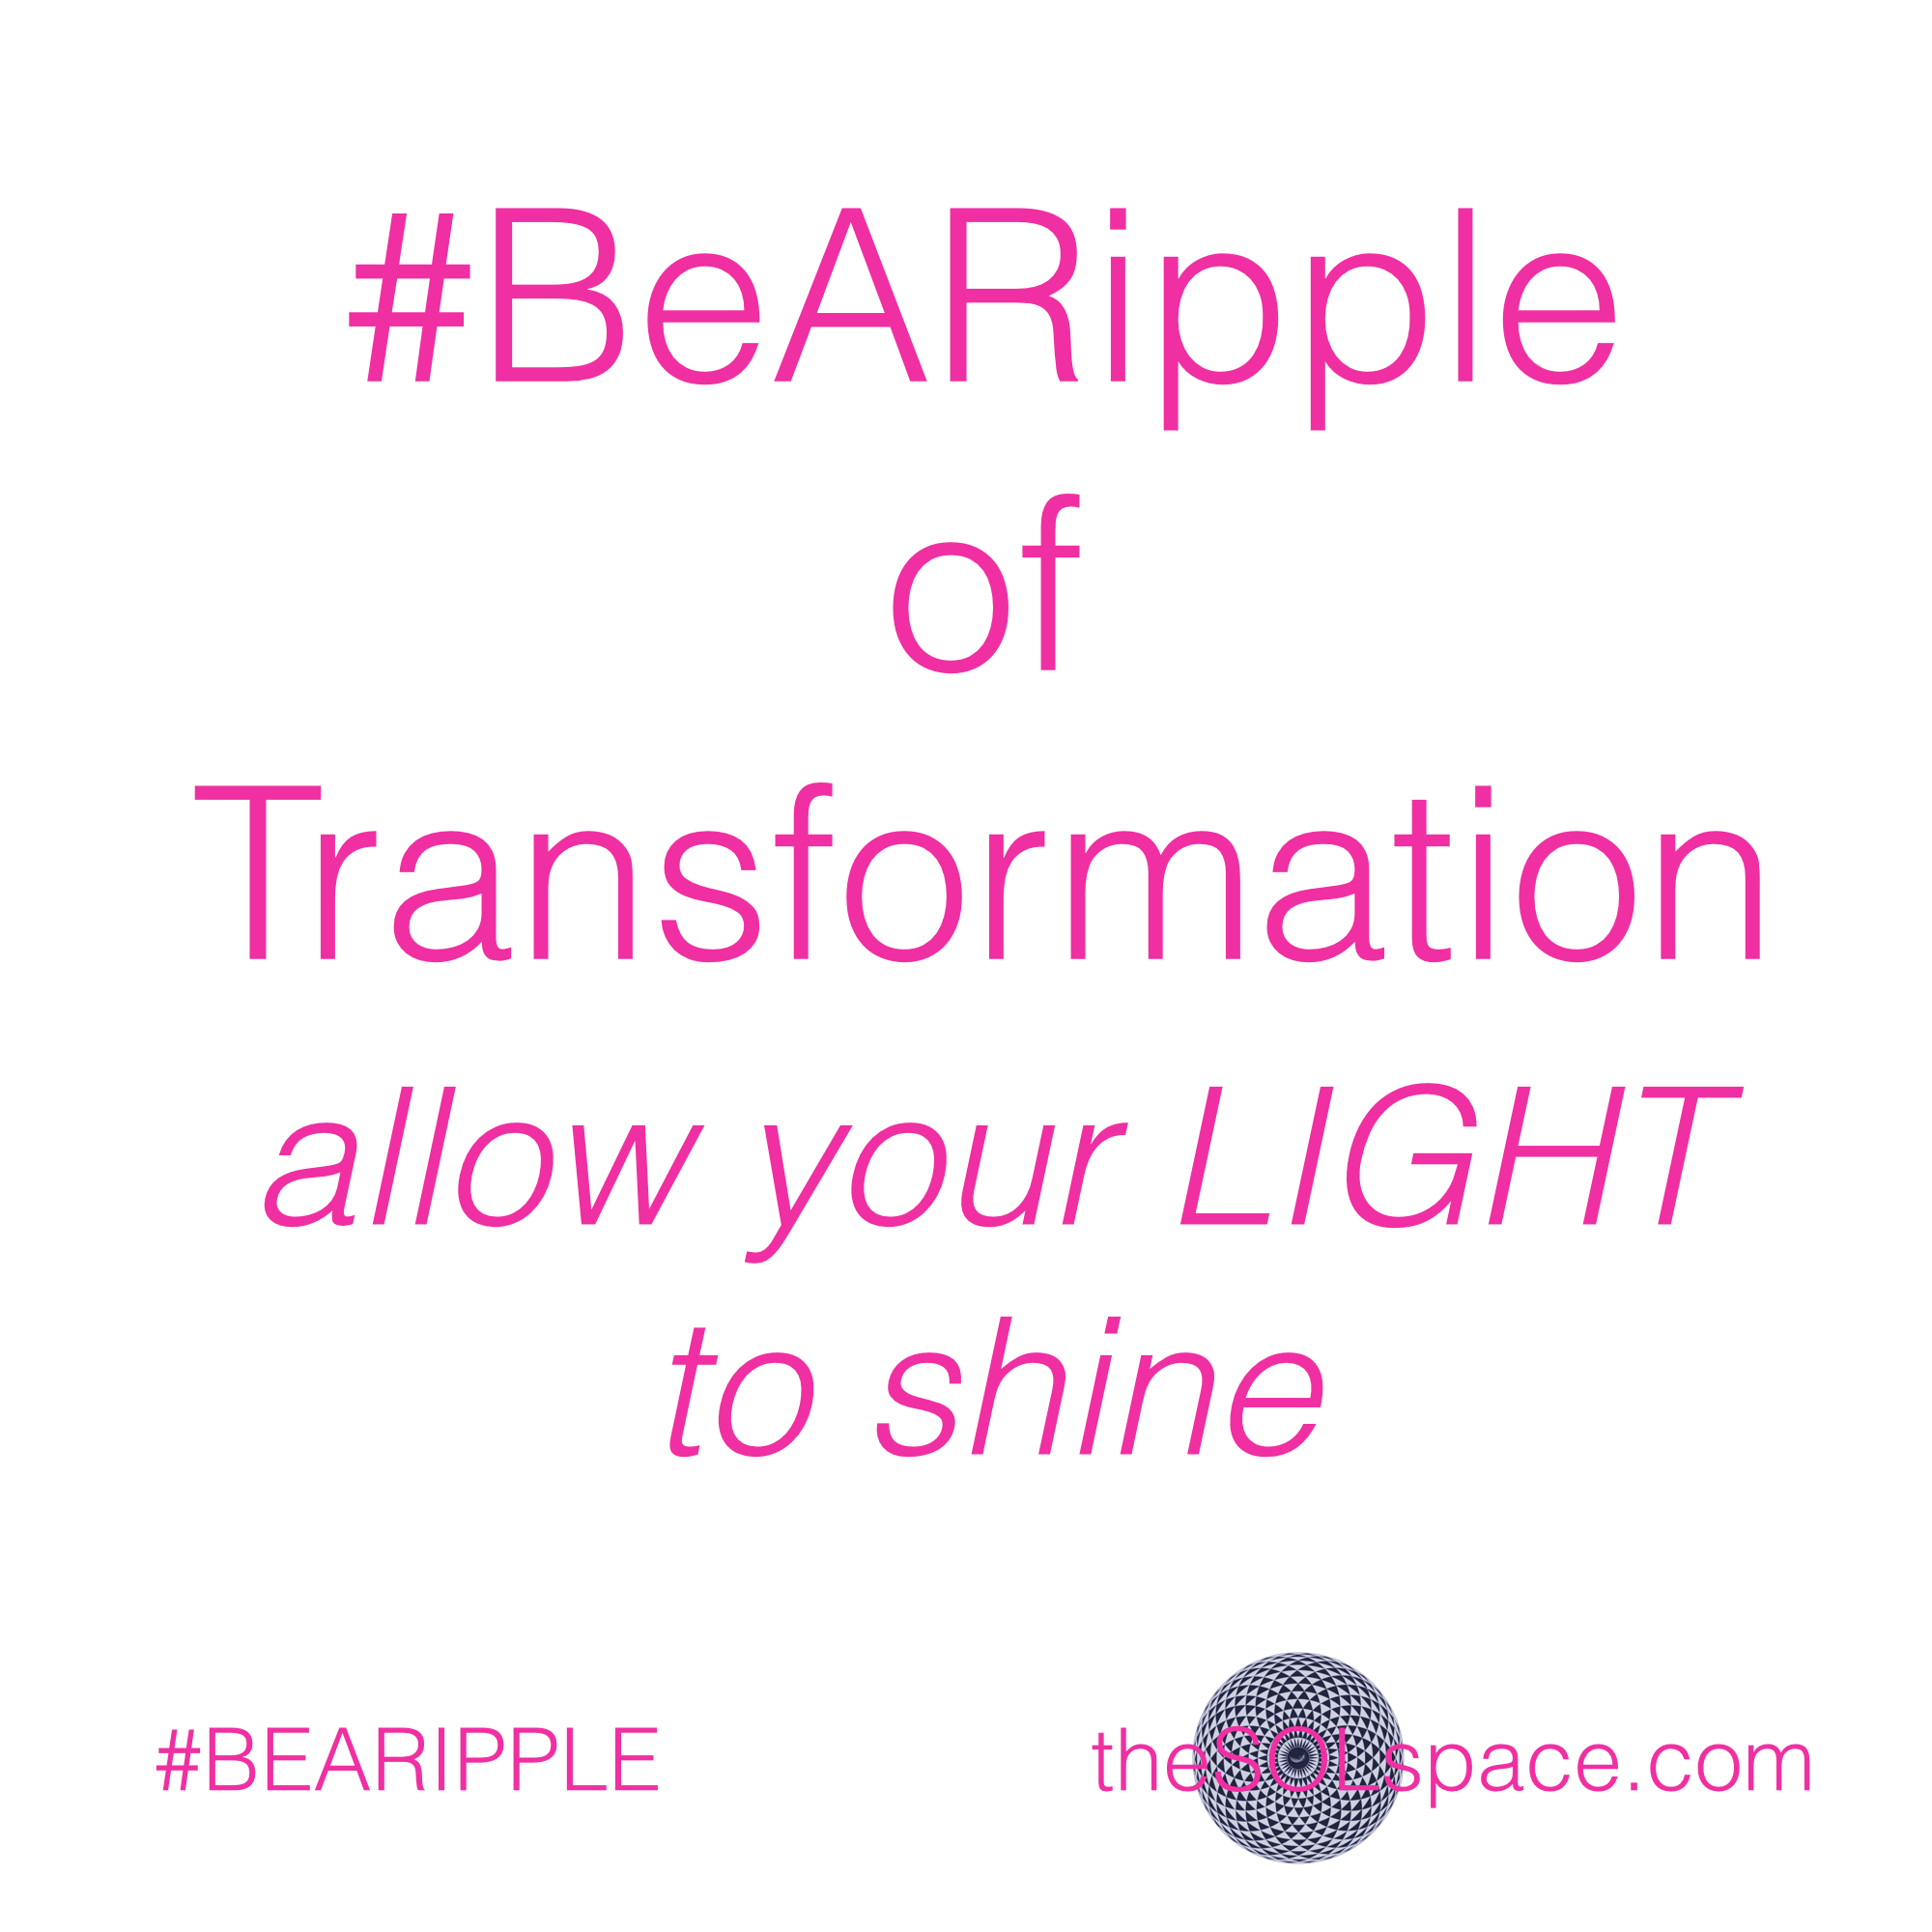 #BeARipple of Transformation, allow your light to shine @theSOLspace